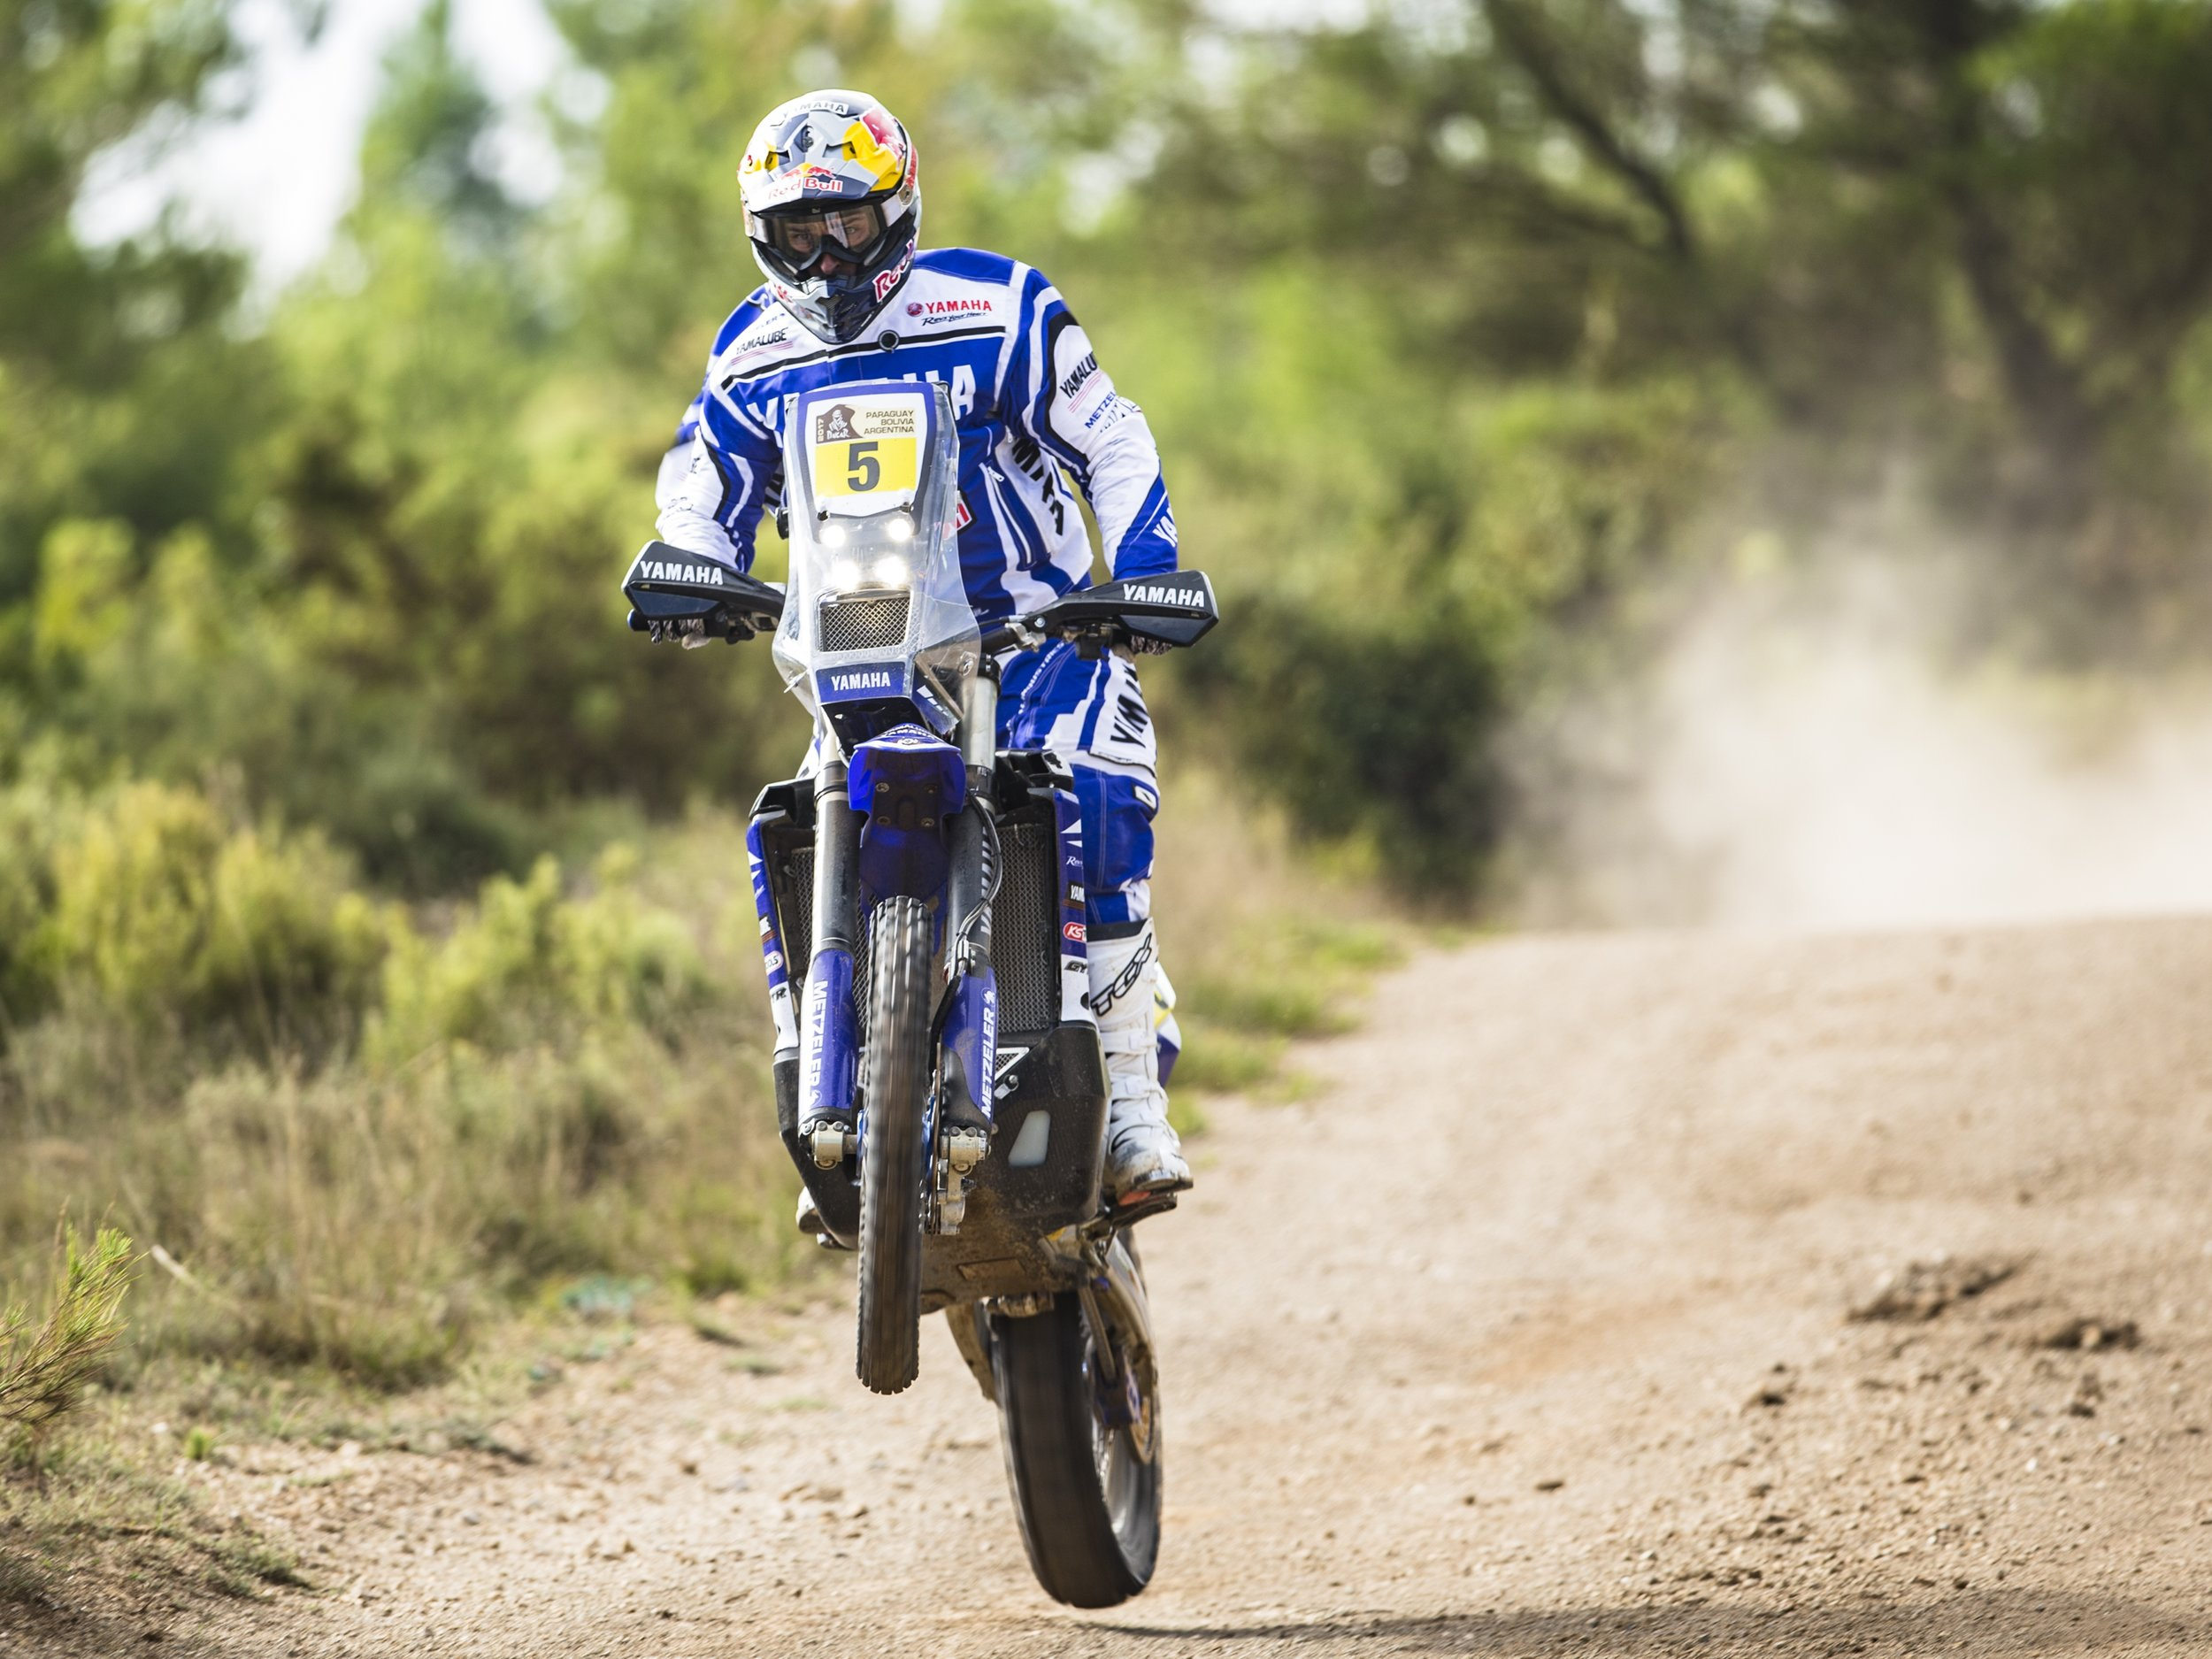 2017_WR450FRALLY_ACT_002.jpg